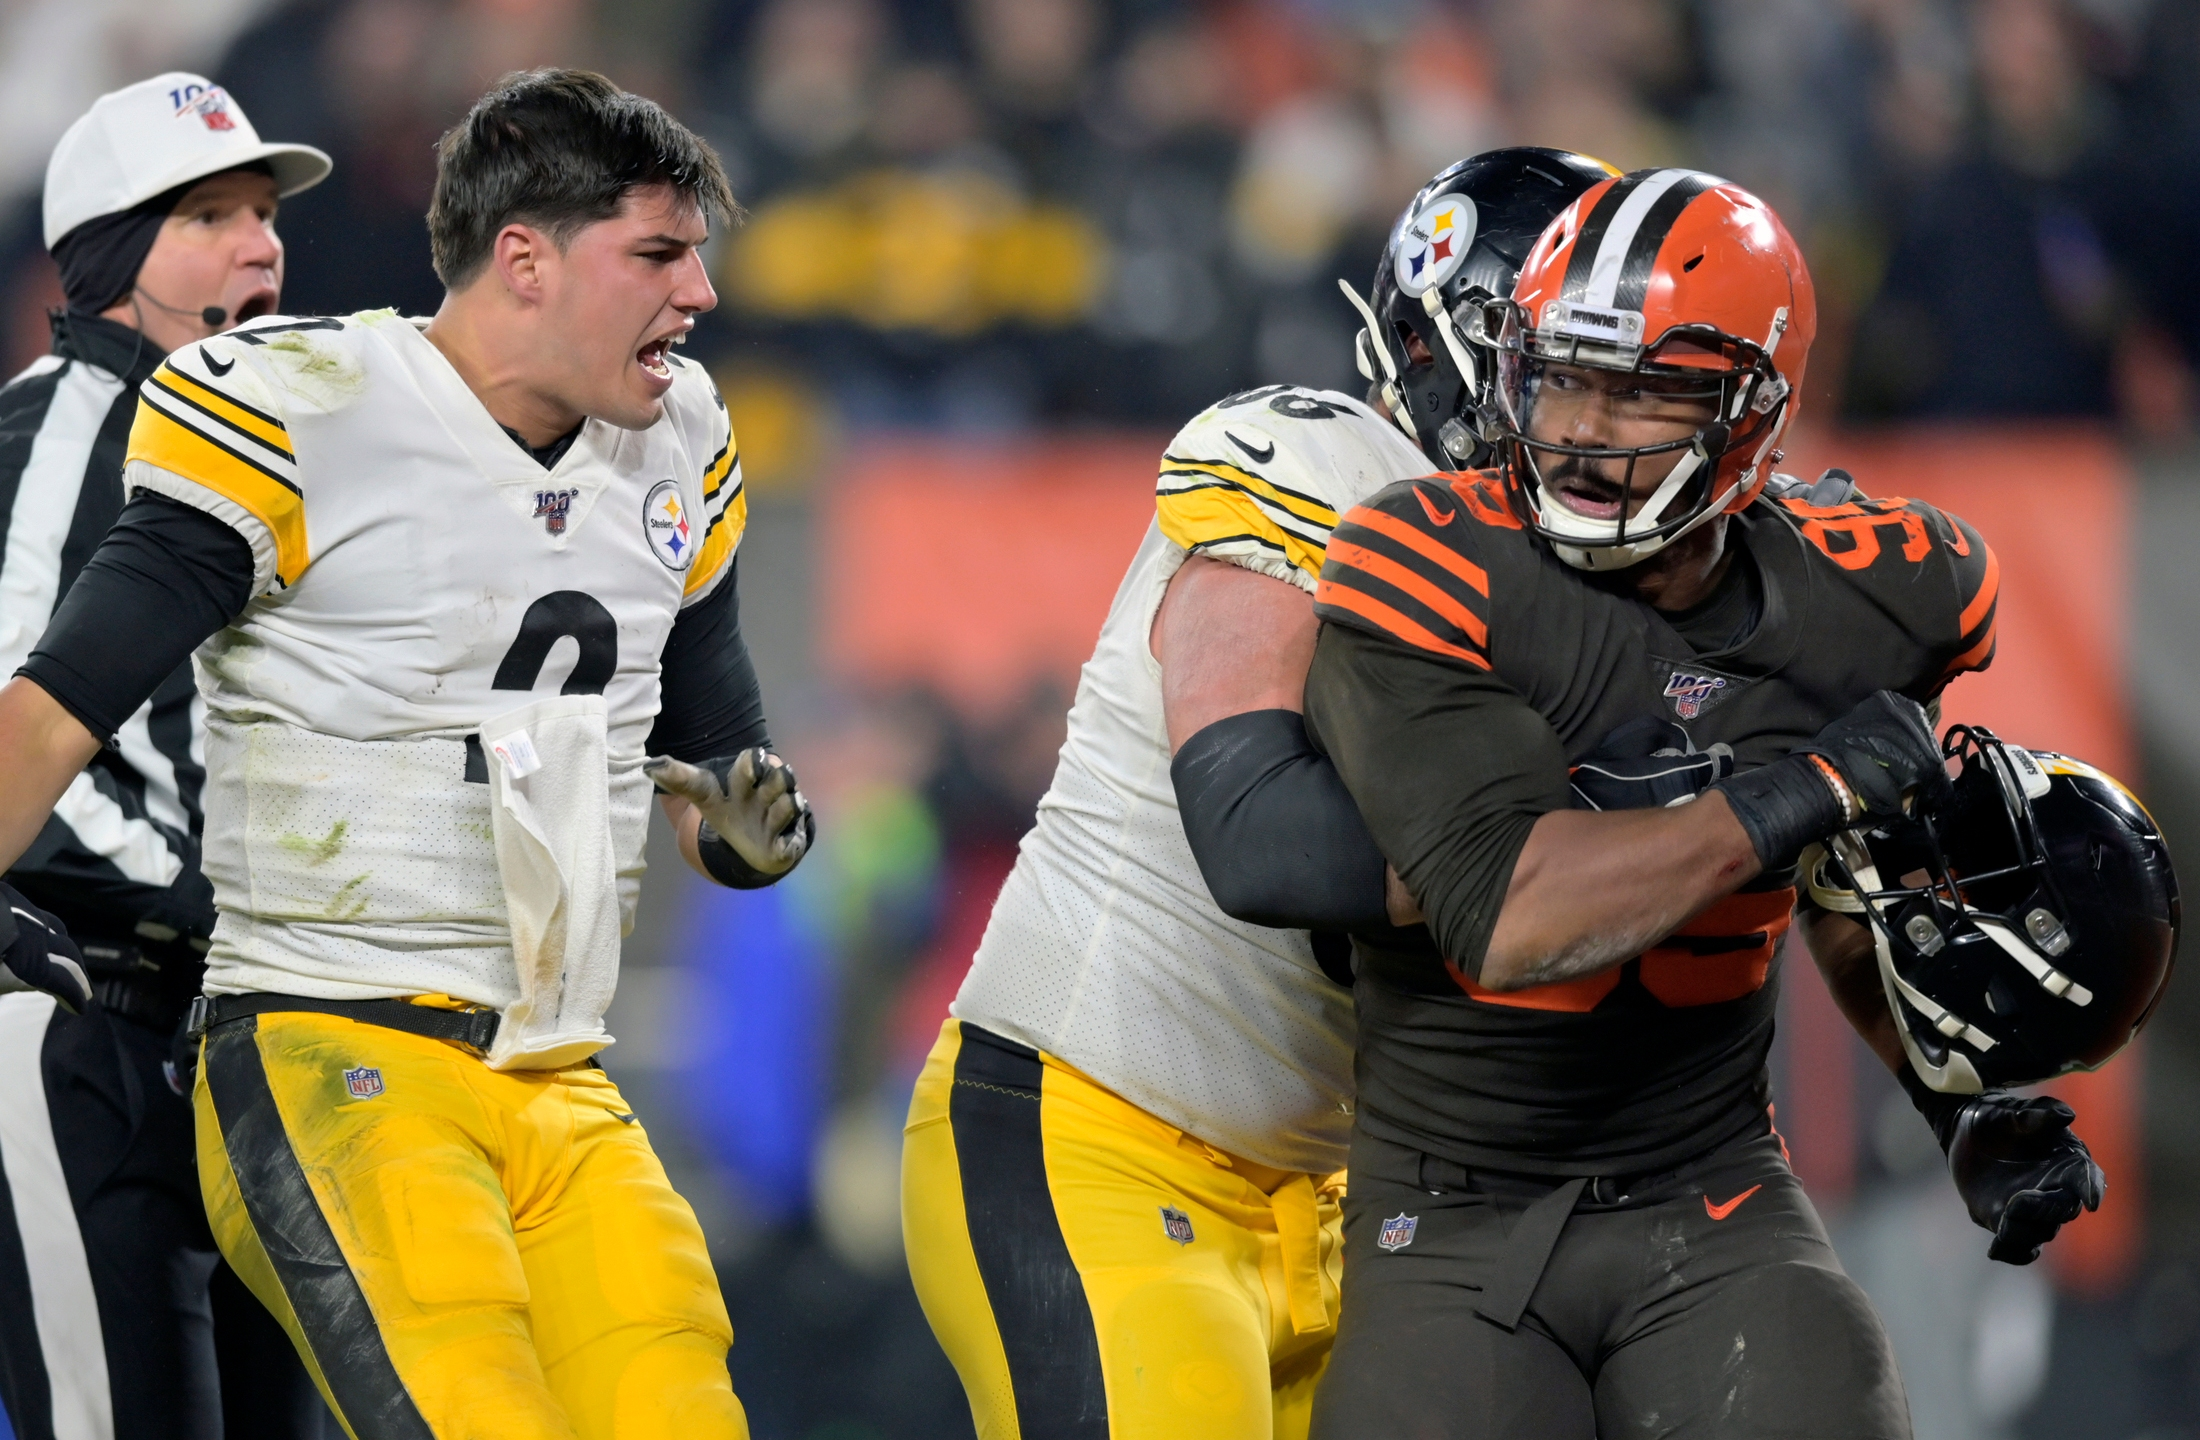 Nfl Hands Out Suspensions Fines Following Steelers Browns